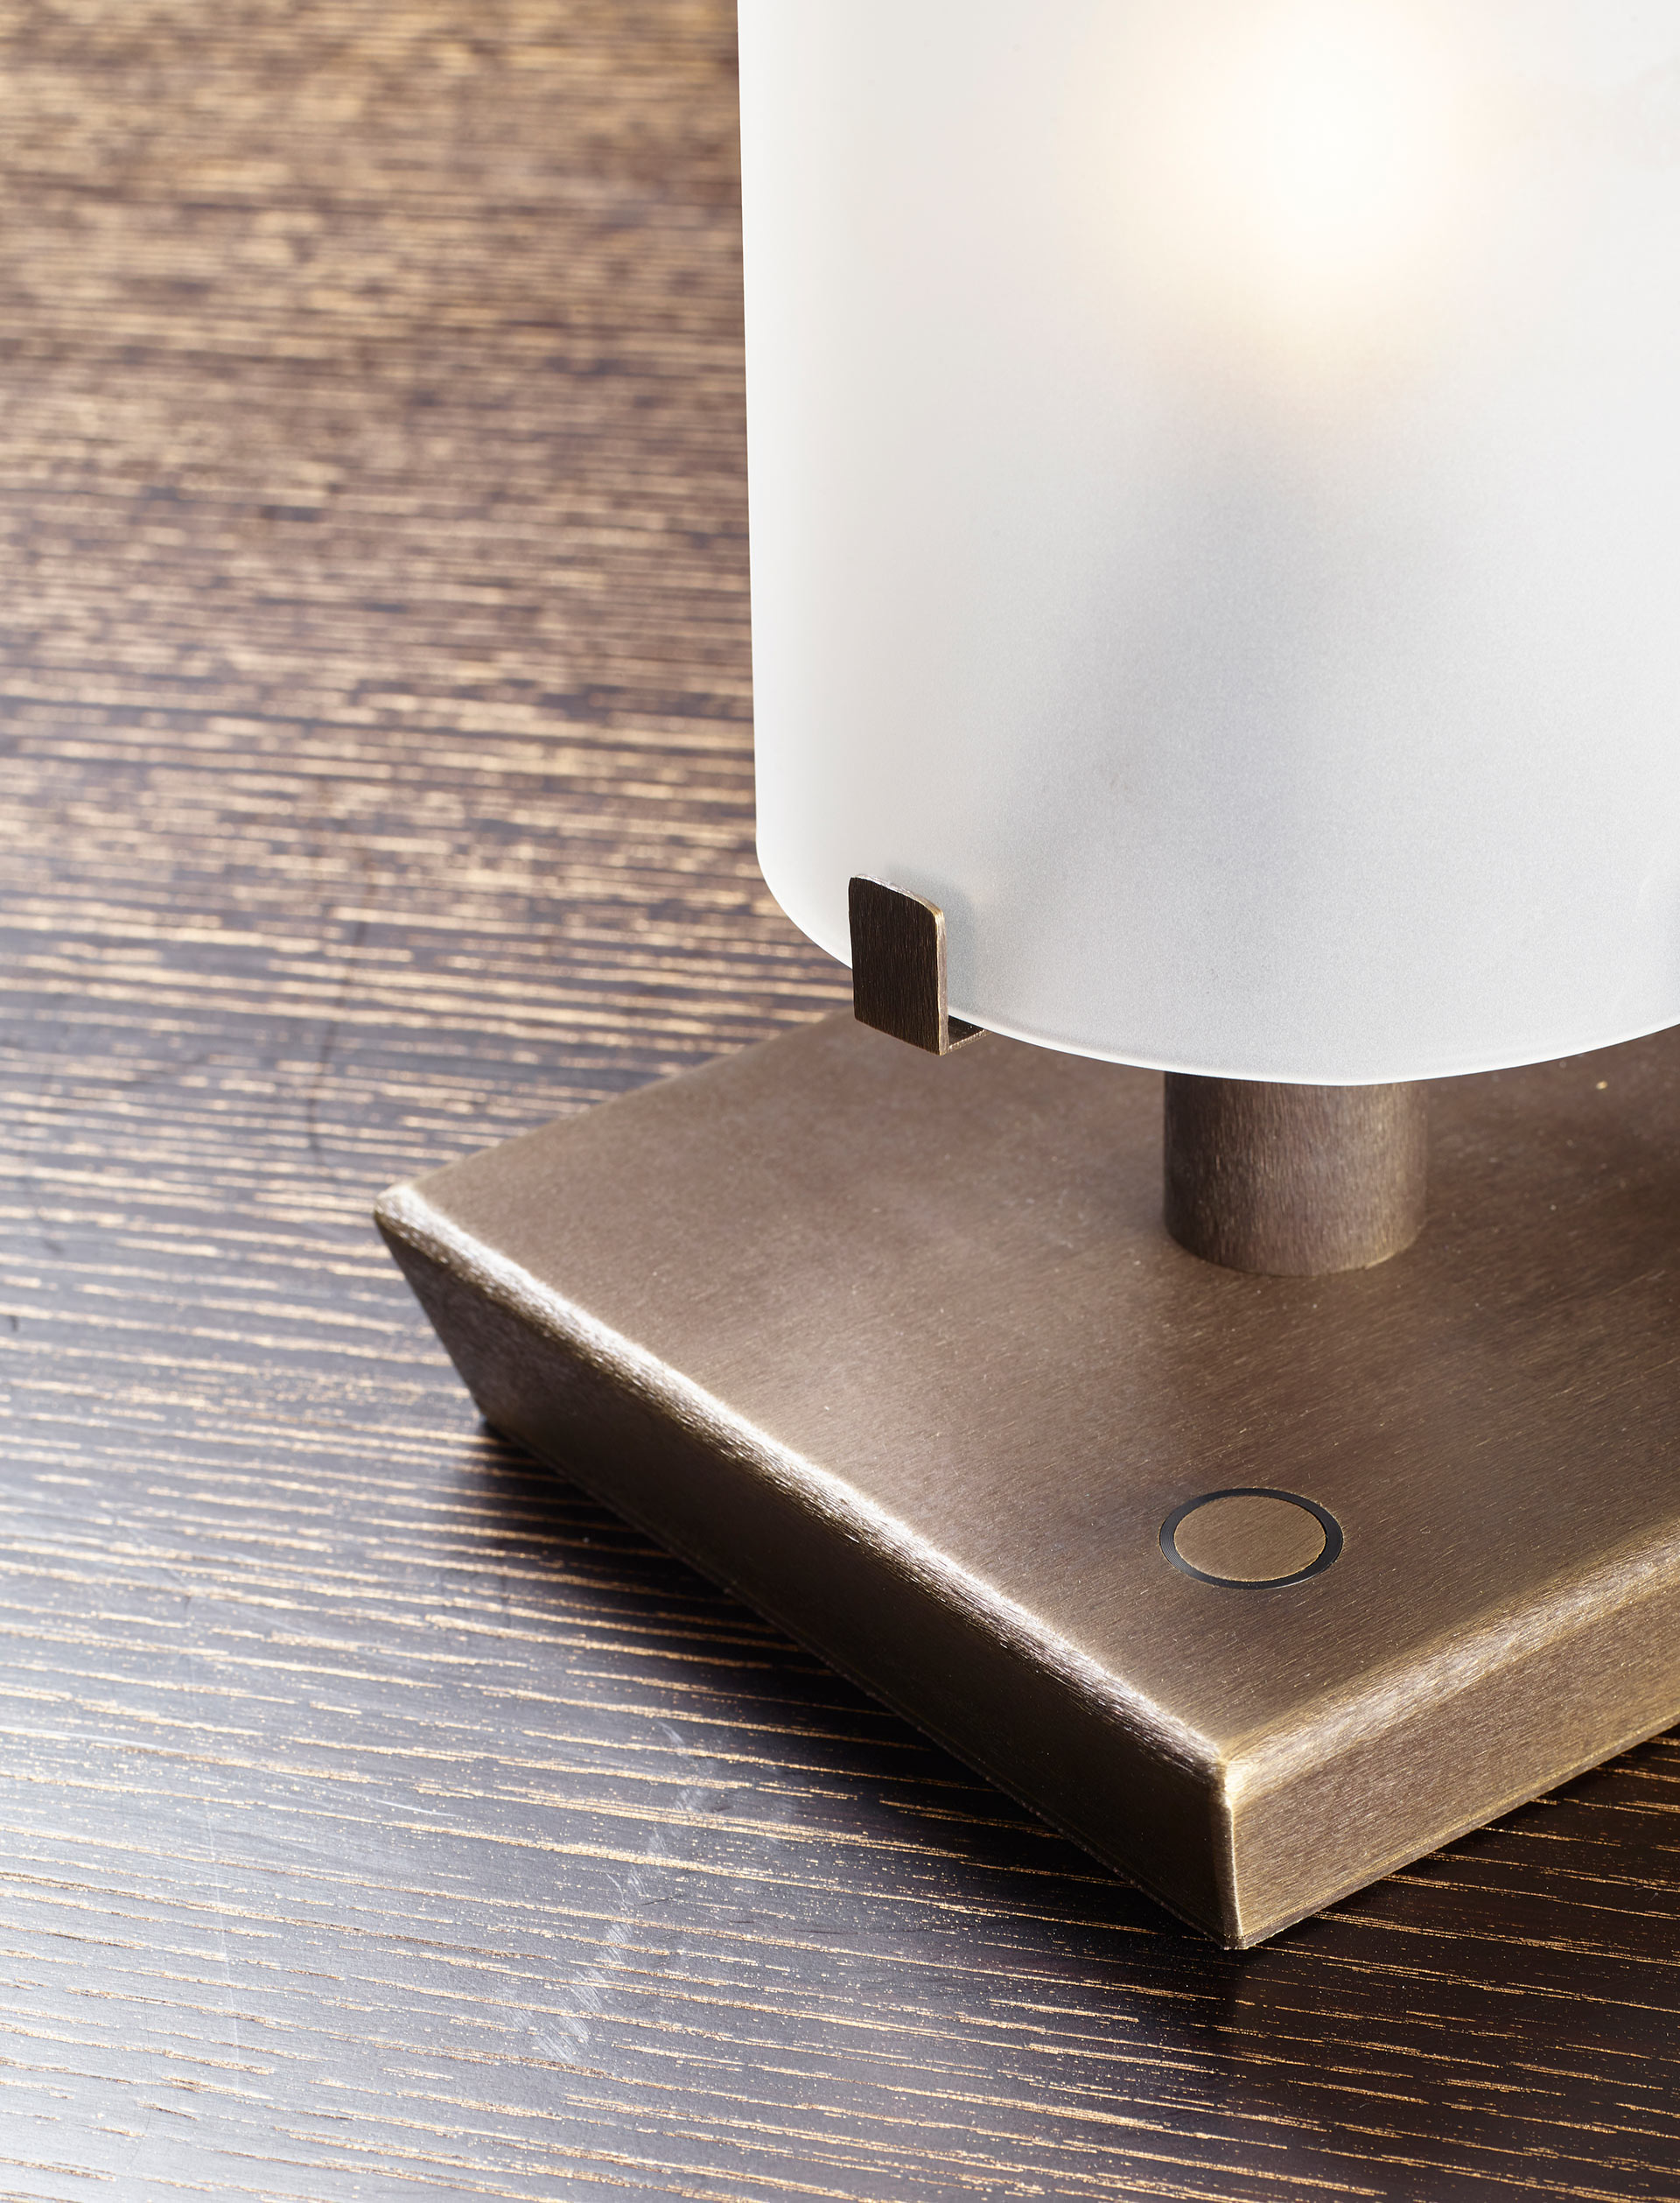 Detail of Marguerite, a table lamp with bronze structure and glass lampshade, from Promemoria's catalogue | Promemoria